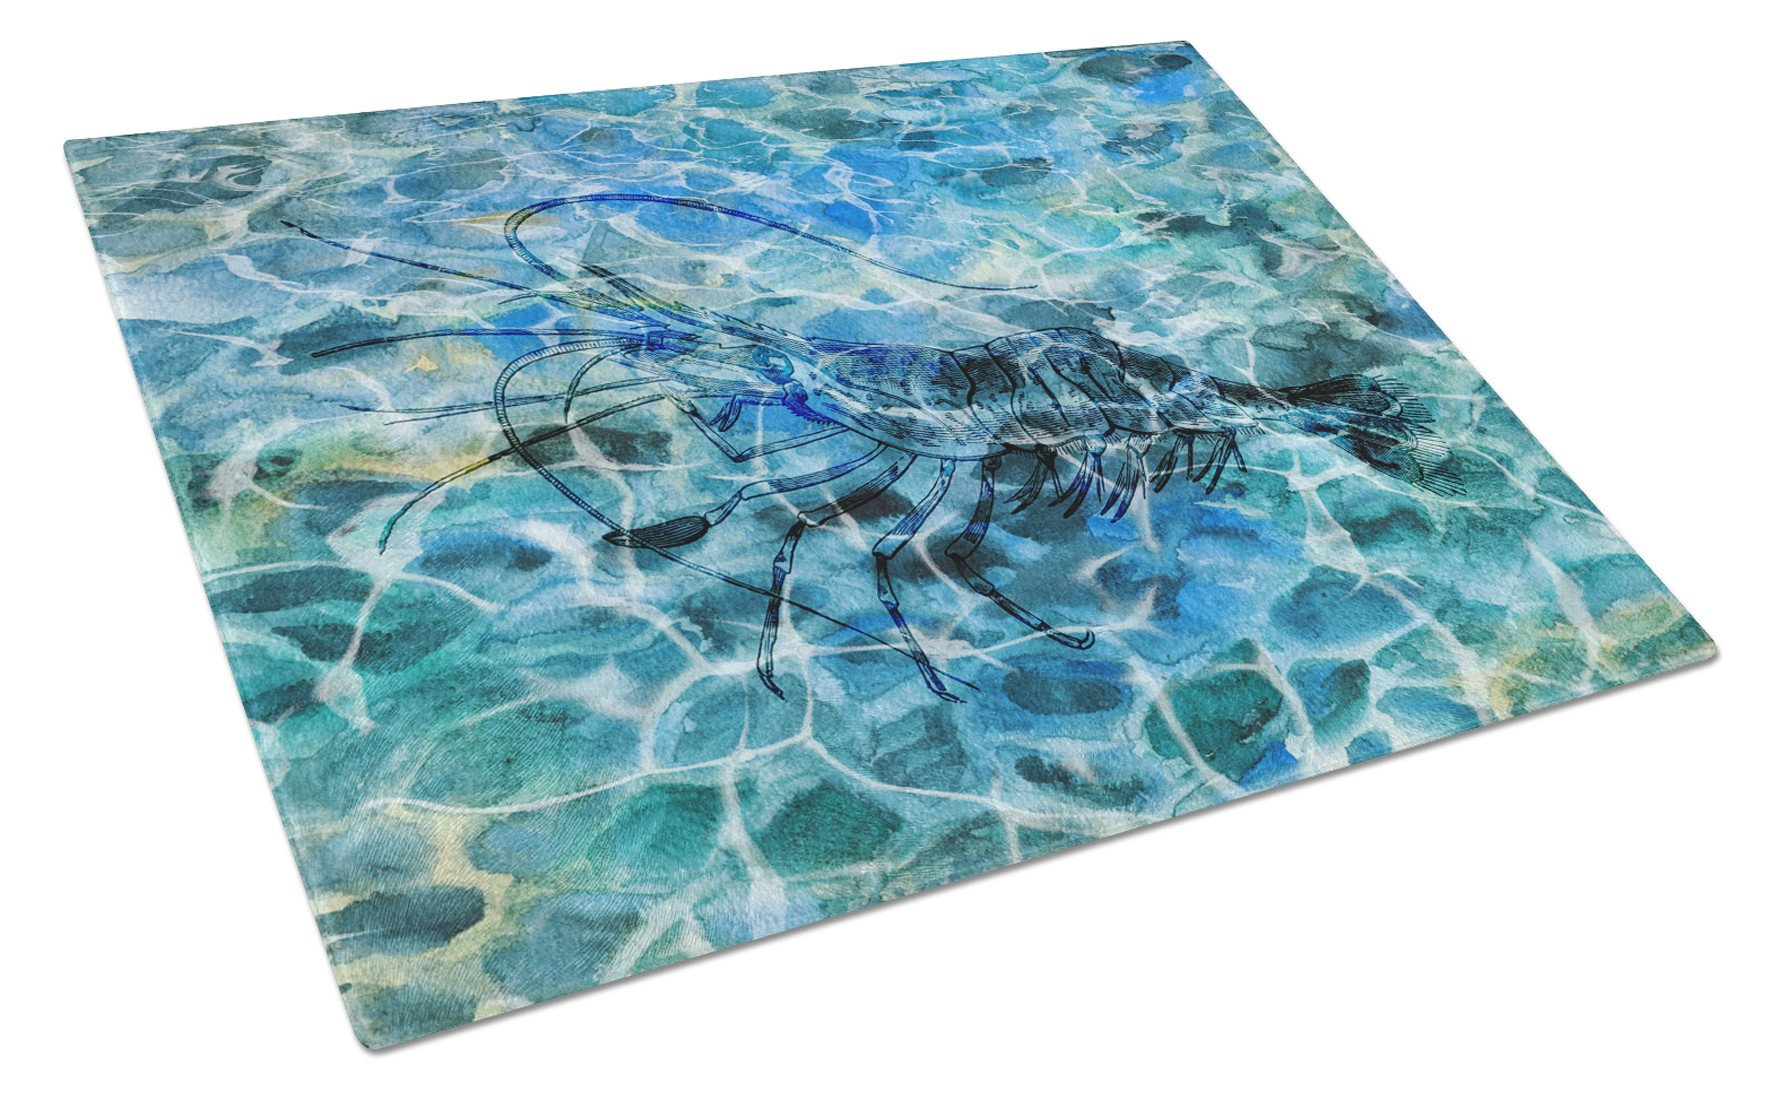 Shrimp Under water Glass Cutting Board Large BB5359LCB by Caroline's Treasures